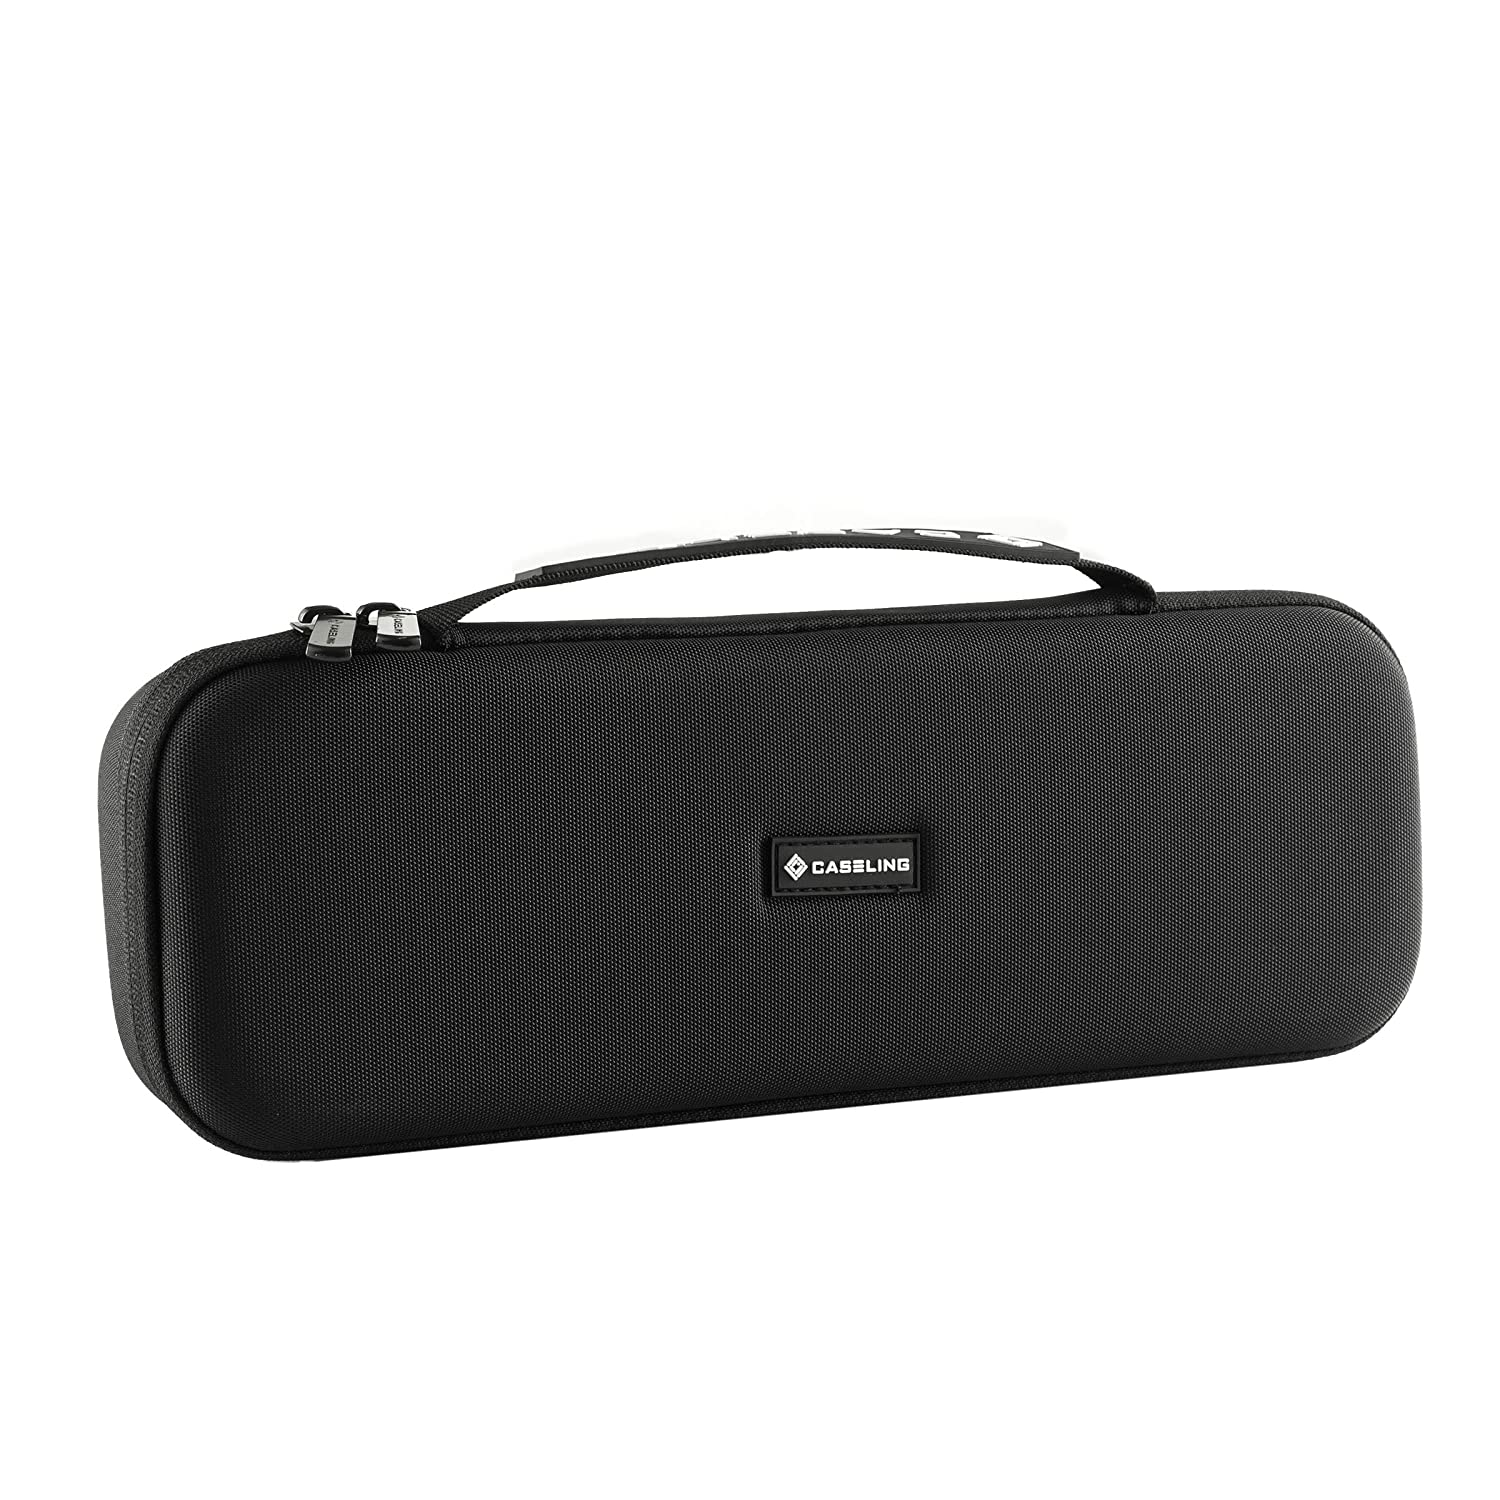 Hard CASE for Flat Iron. with mesh Pocket. by Caseling